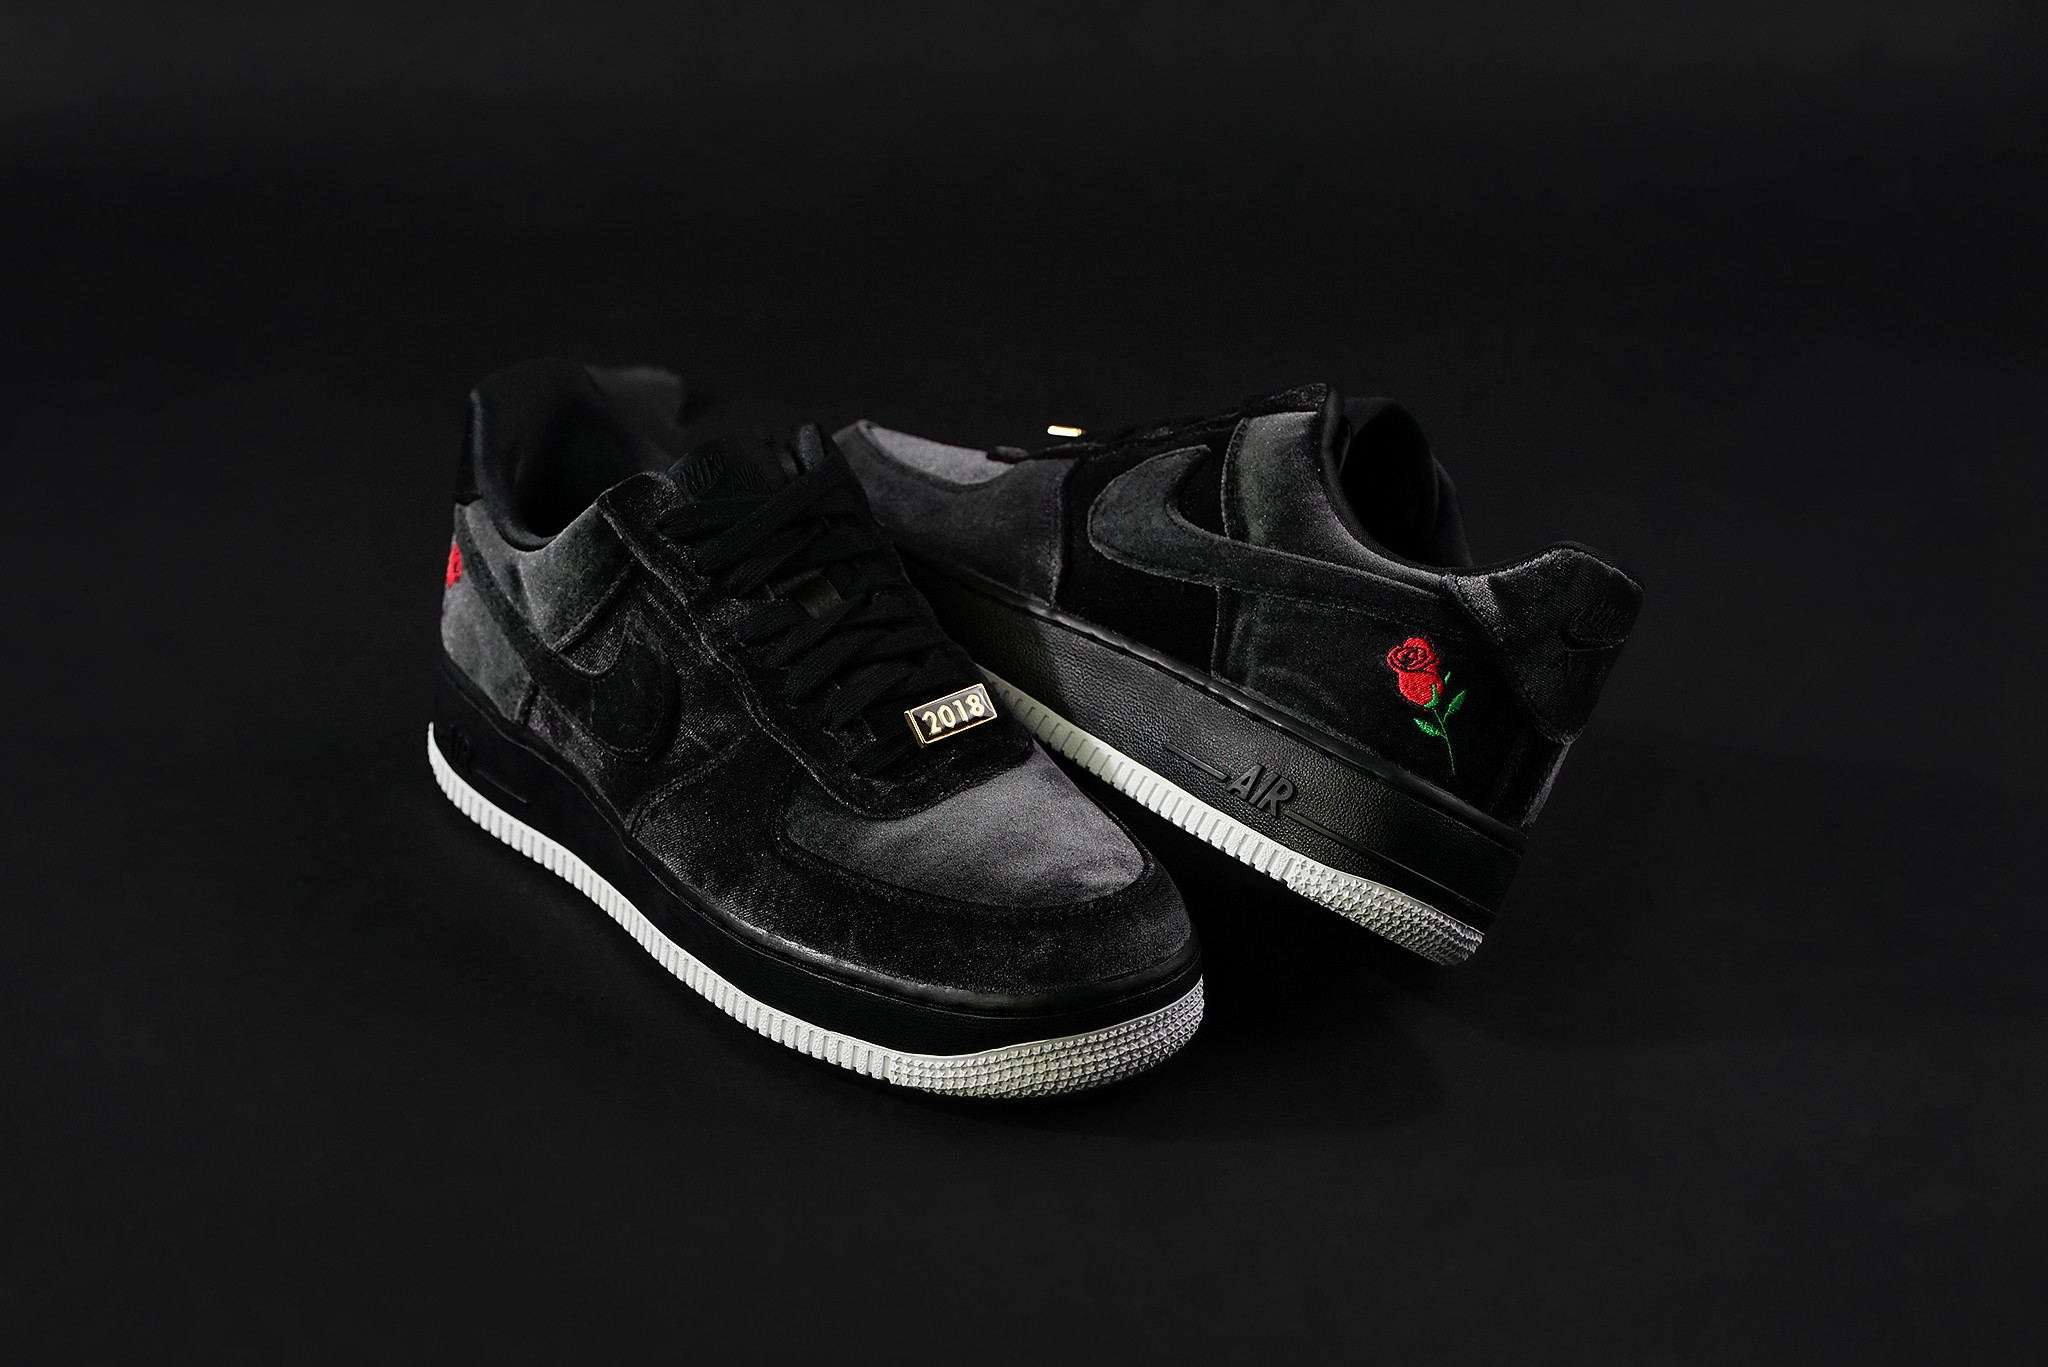 FULL BLACK VELVET AIR FORCE 1